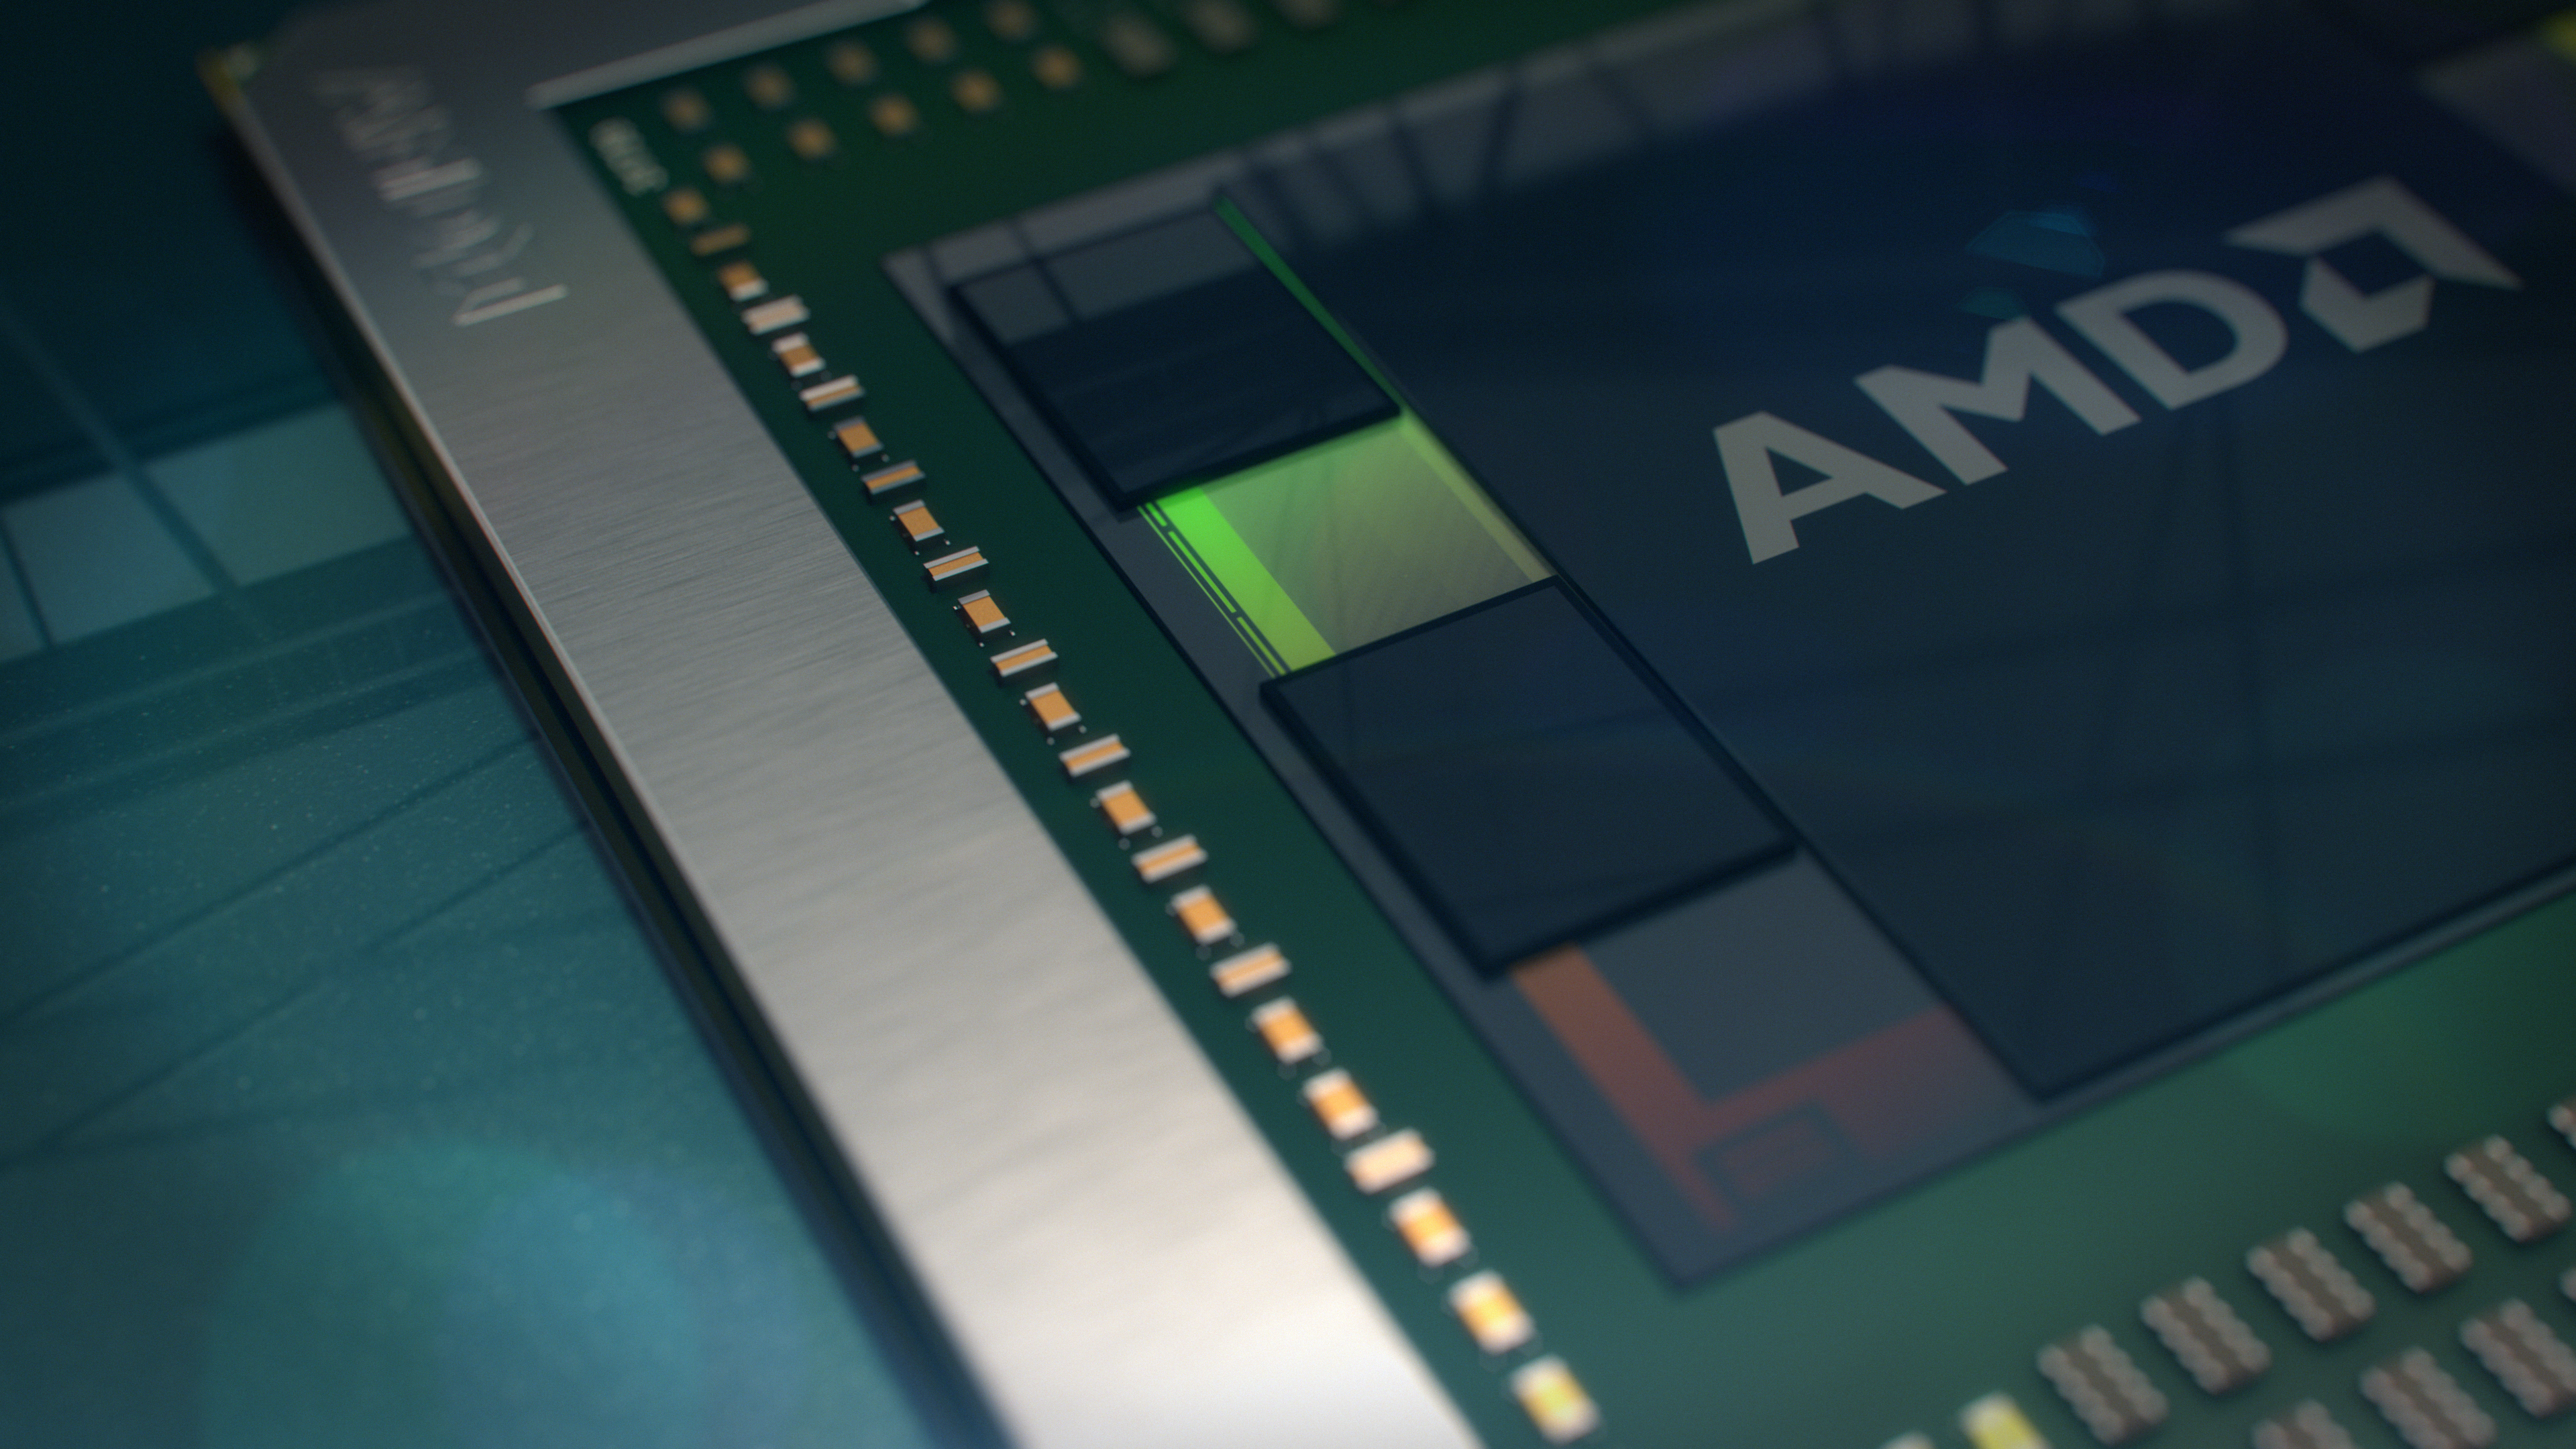 AMD's Greenland GPU May Feature Up To 32 GB of HBM2 Memory ...